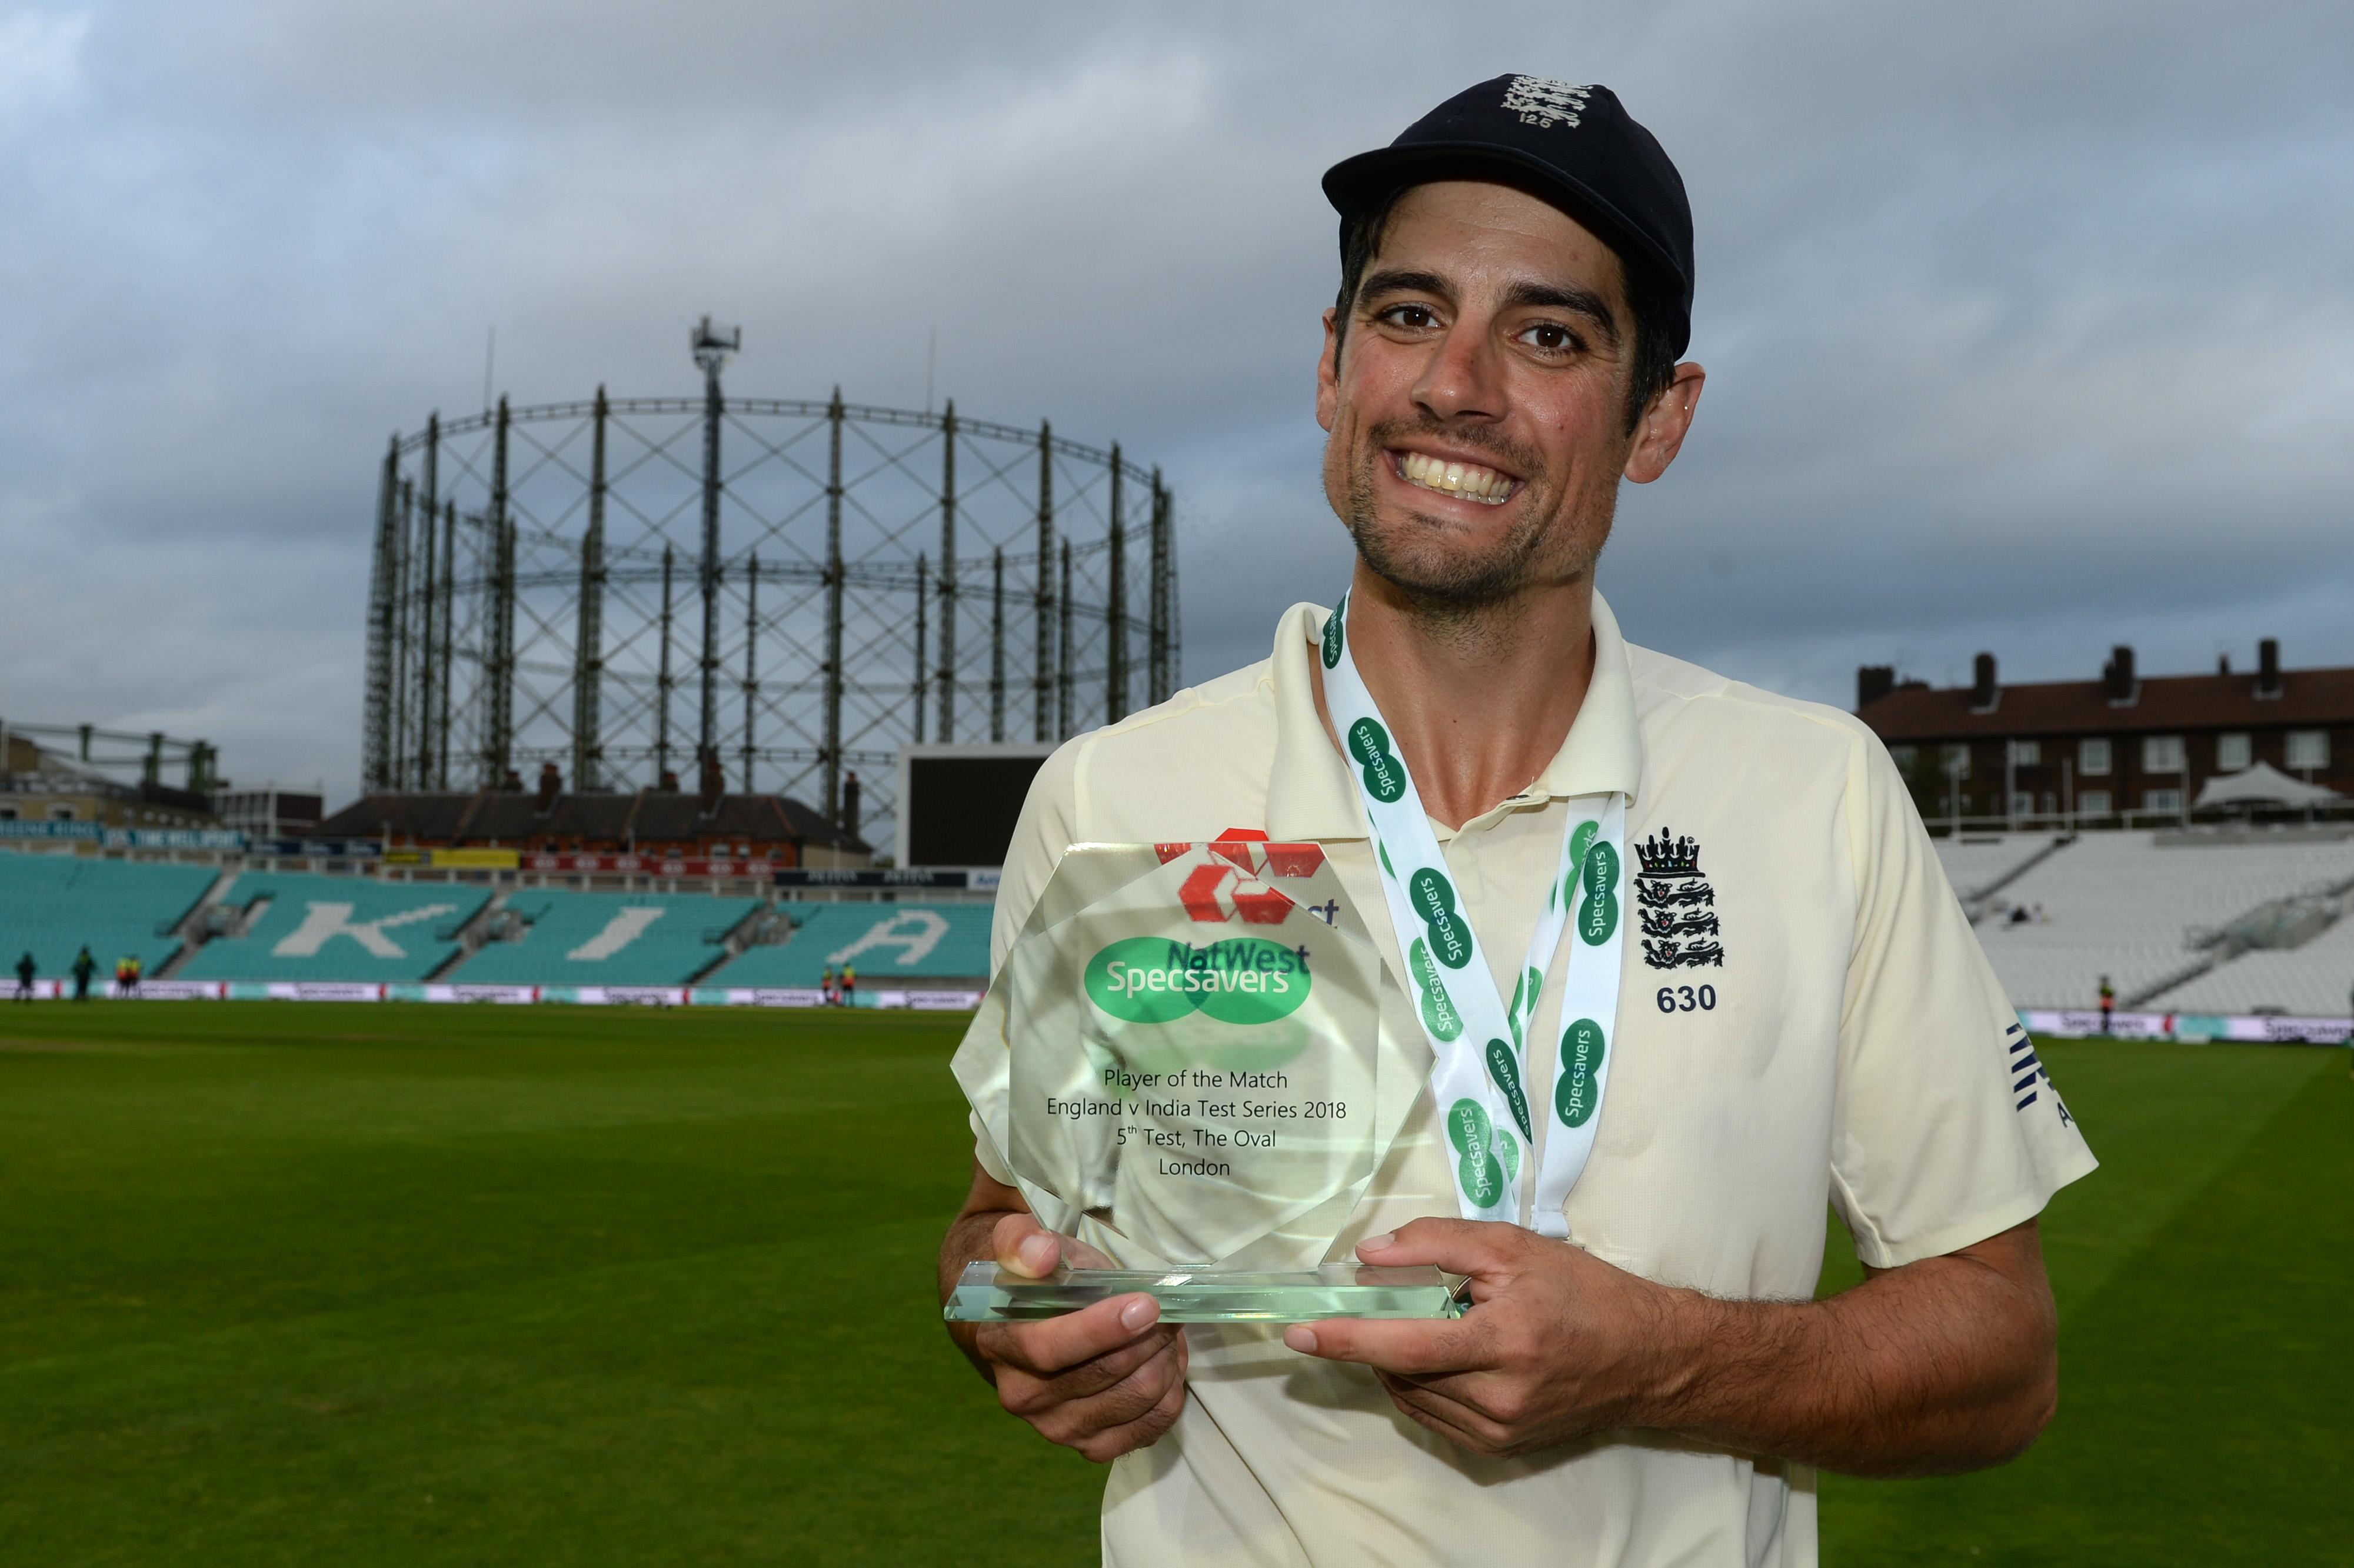 Alastair Cook is the 10th cricketer to be knighted and the first since Ian Botham in 2007